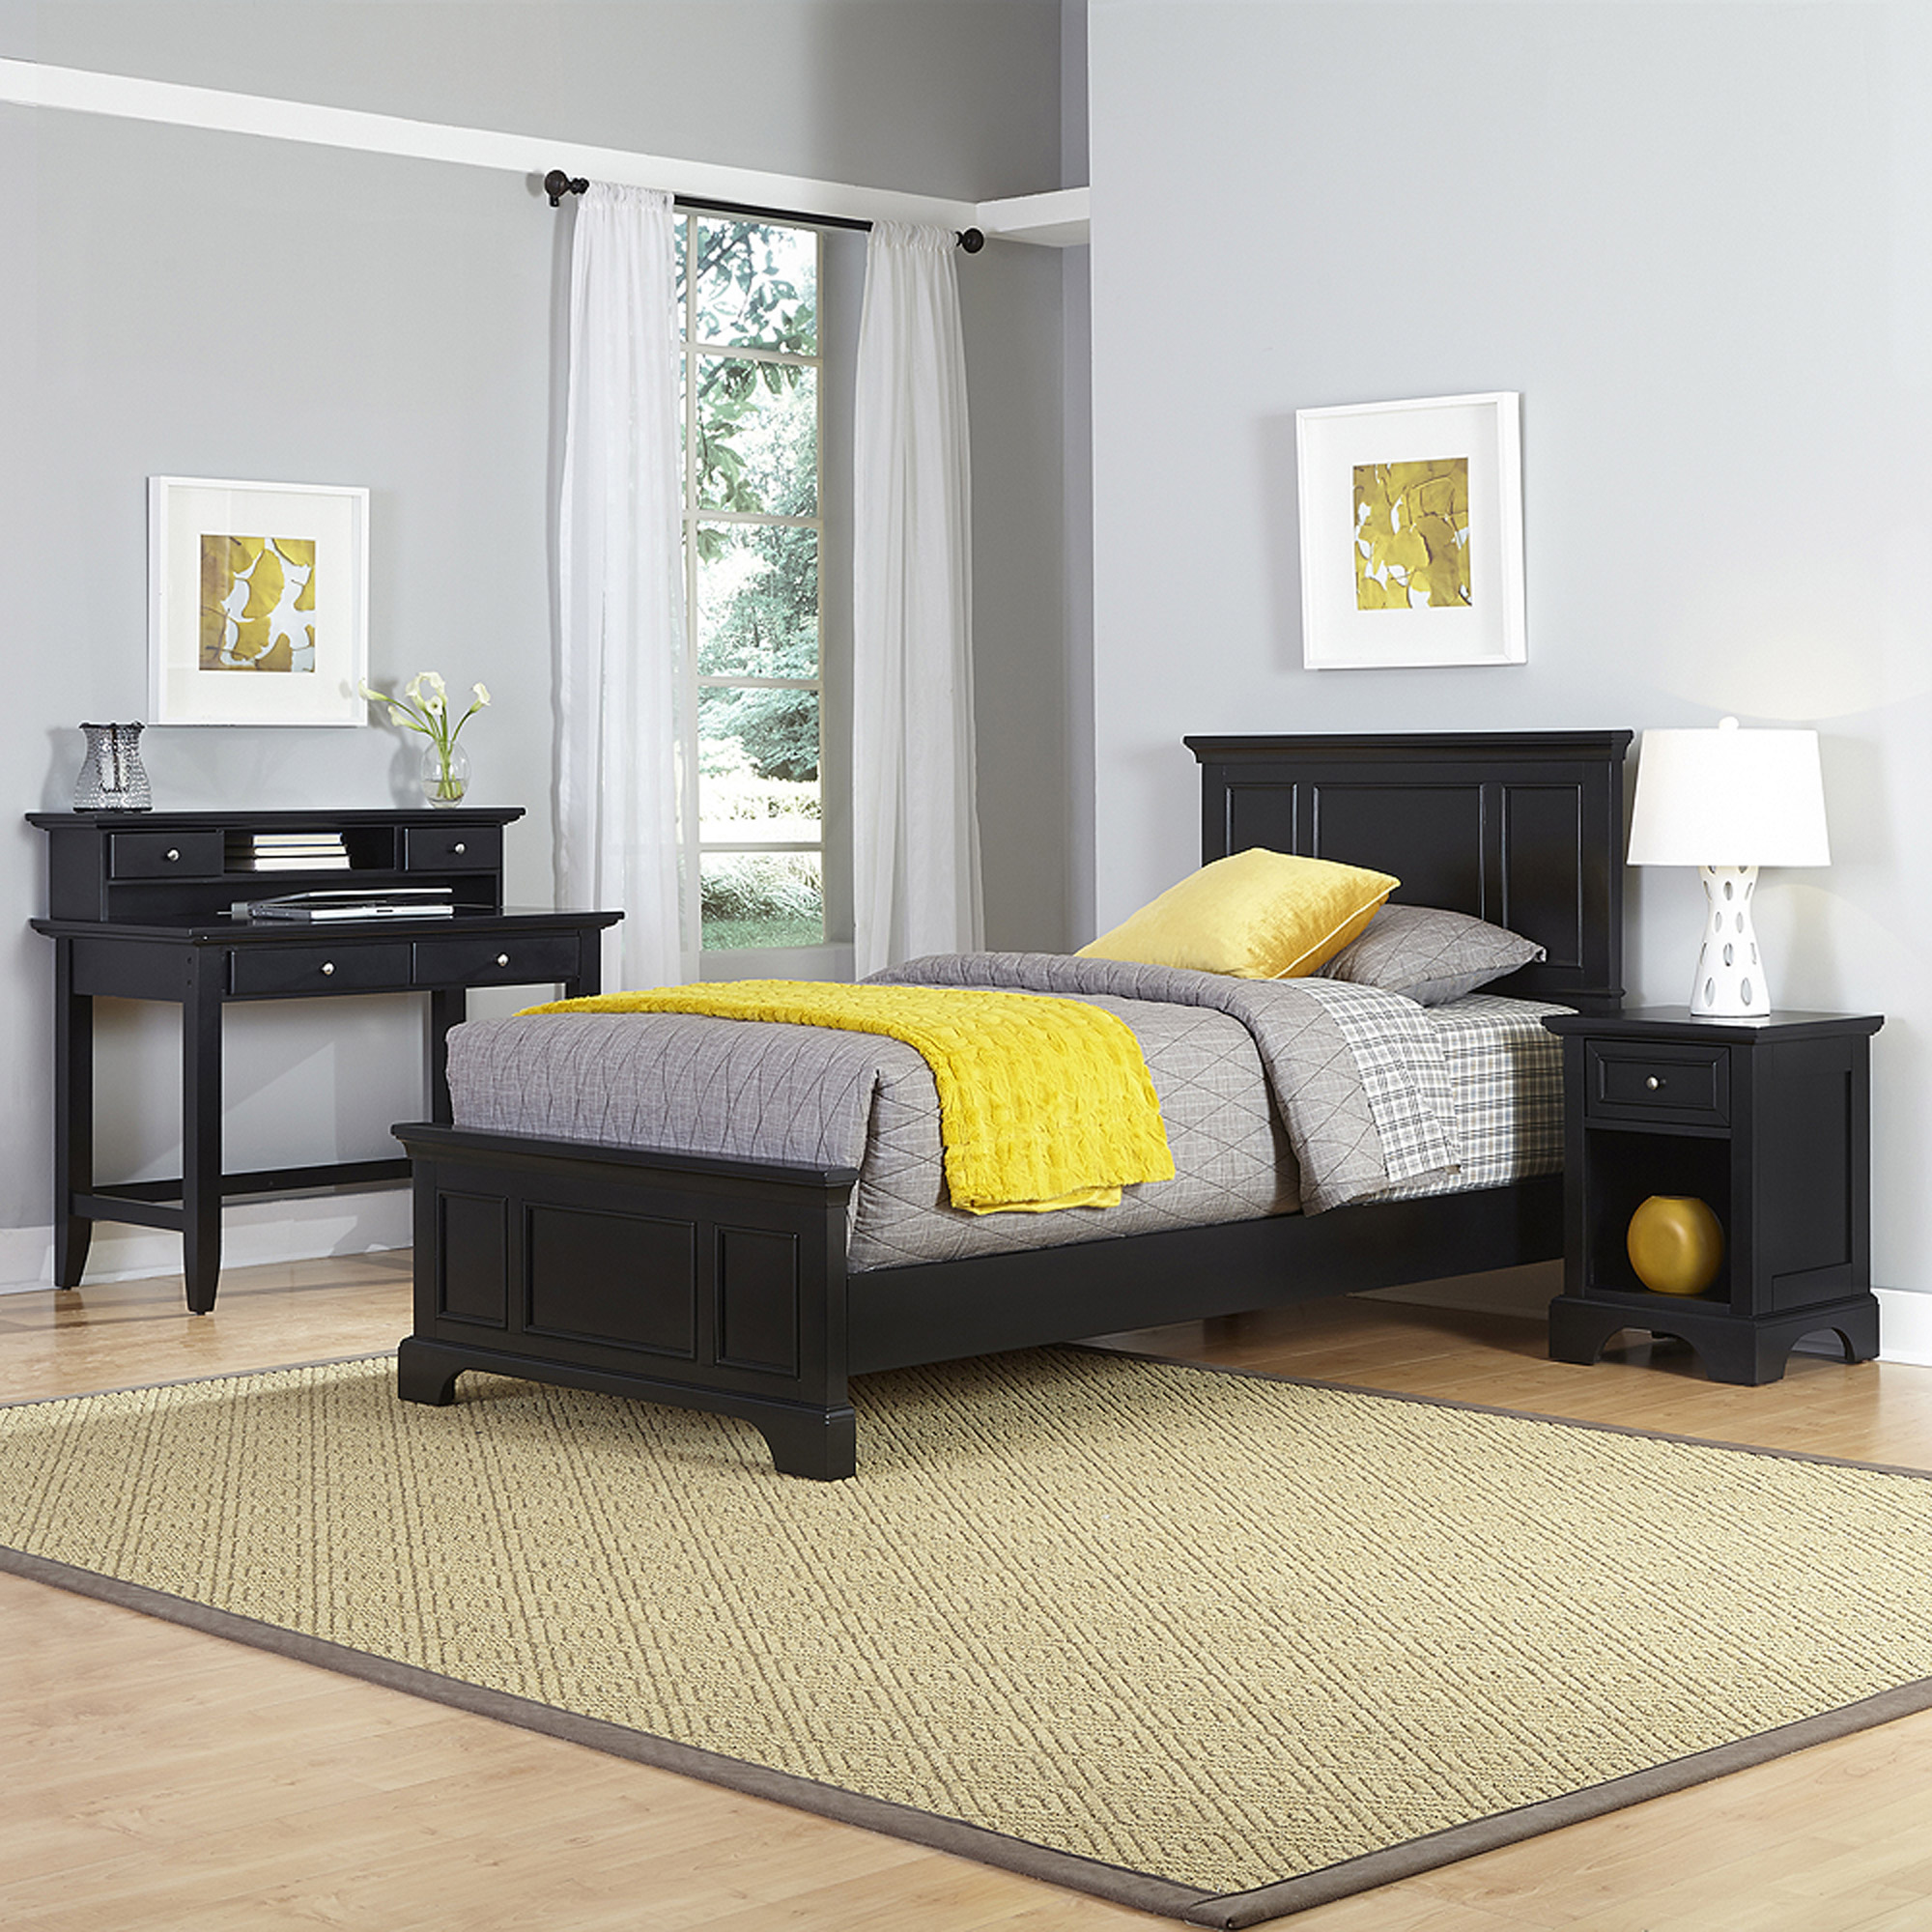 Home Styles Bedford Twin Bed, Night Stand and Student Desk with Hutch